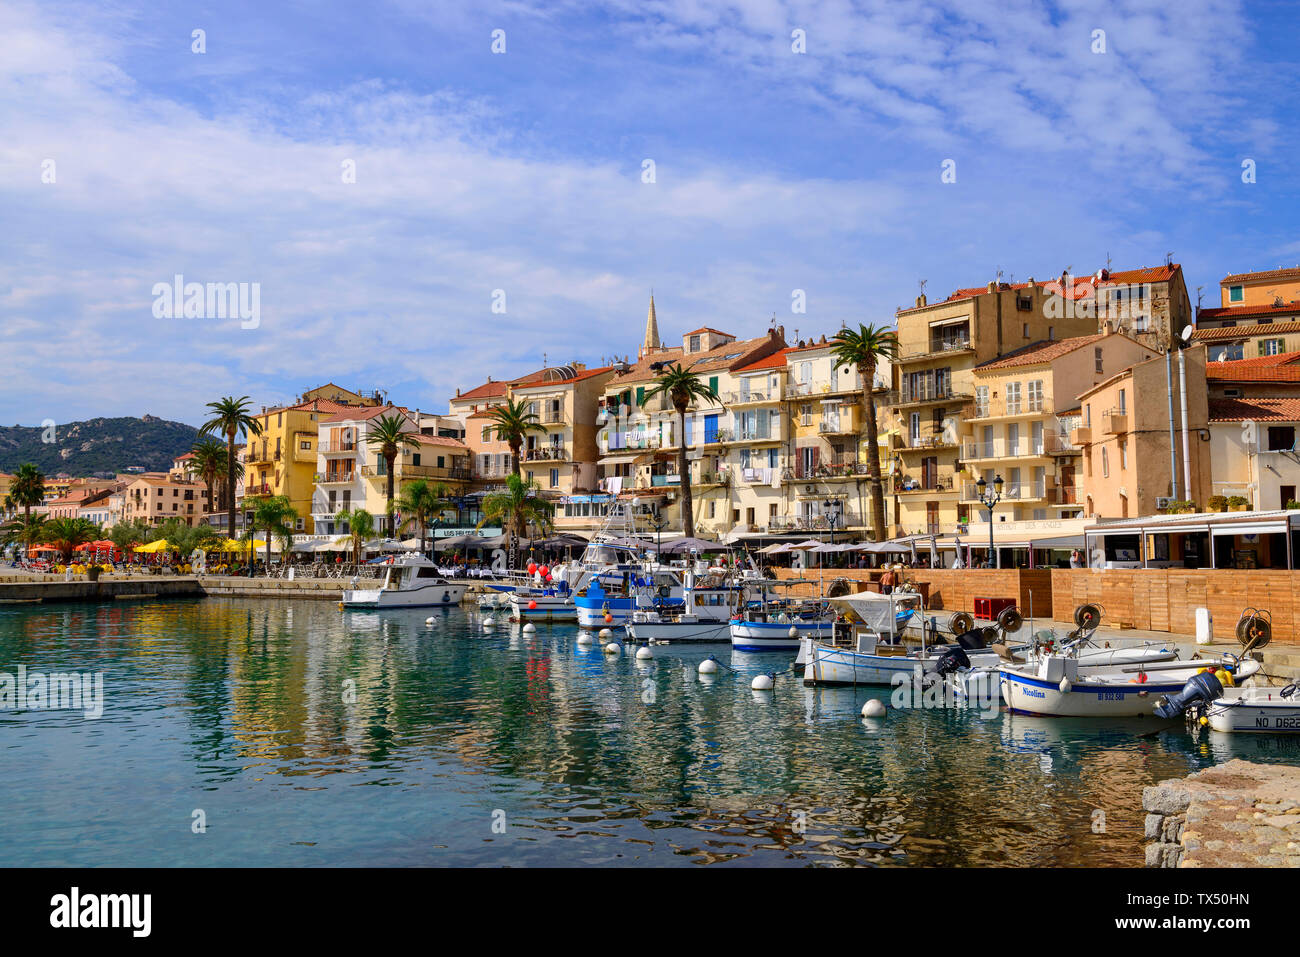 France, Corsica, Calvi, boats in the harbour - Stock Image